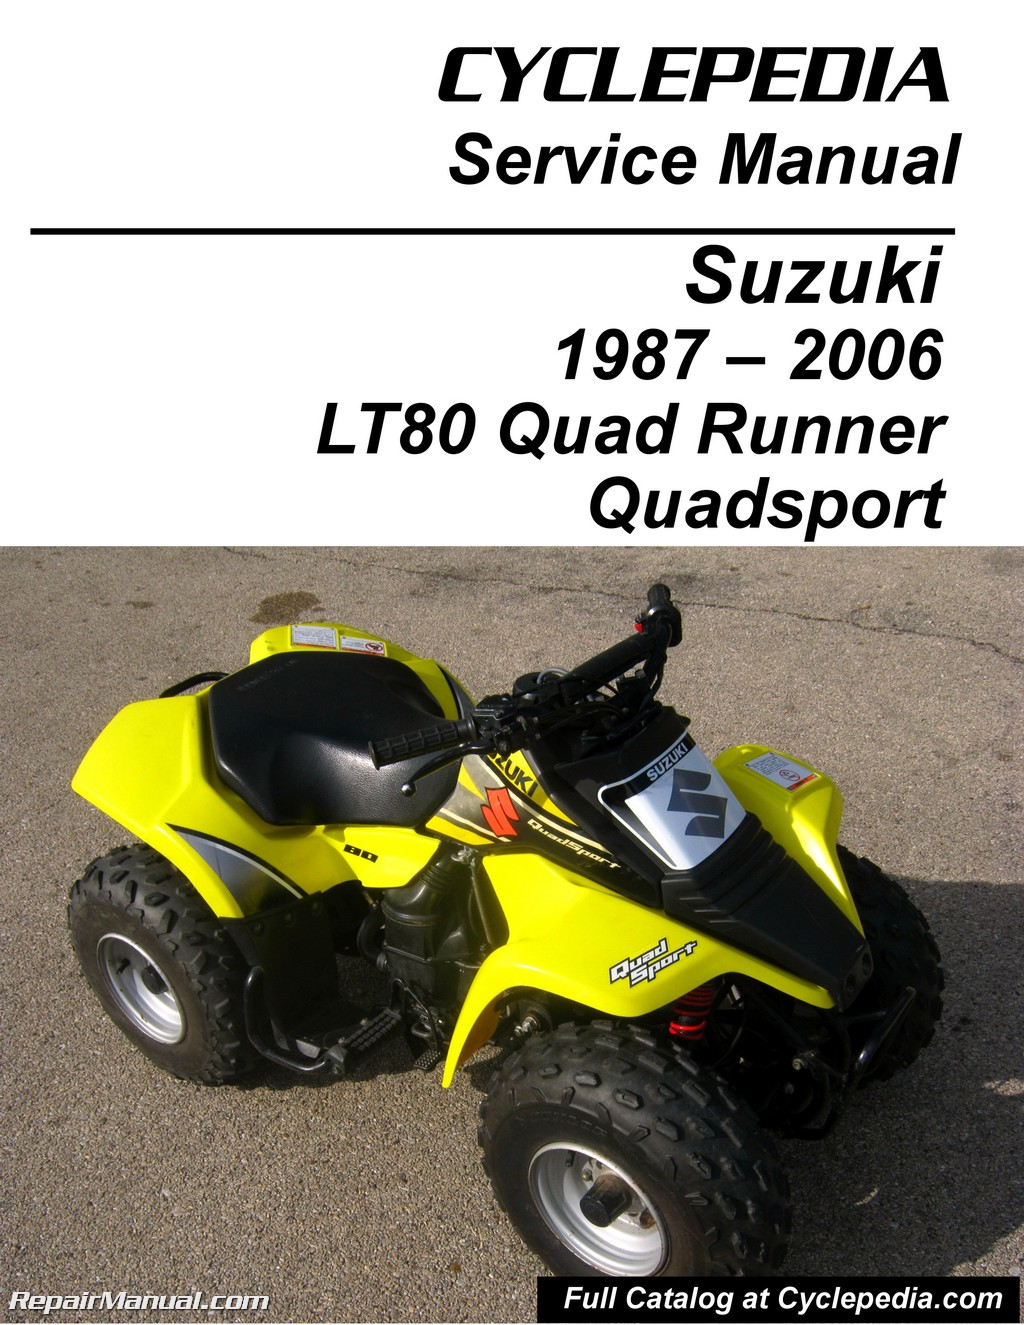 hight resolution of suzuki lt80 quadsport kawasaki kfx80 cyclepedia printed servicesuzuki lt80 quadsport